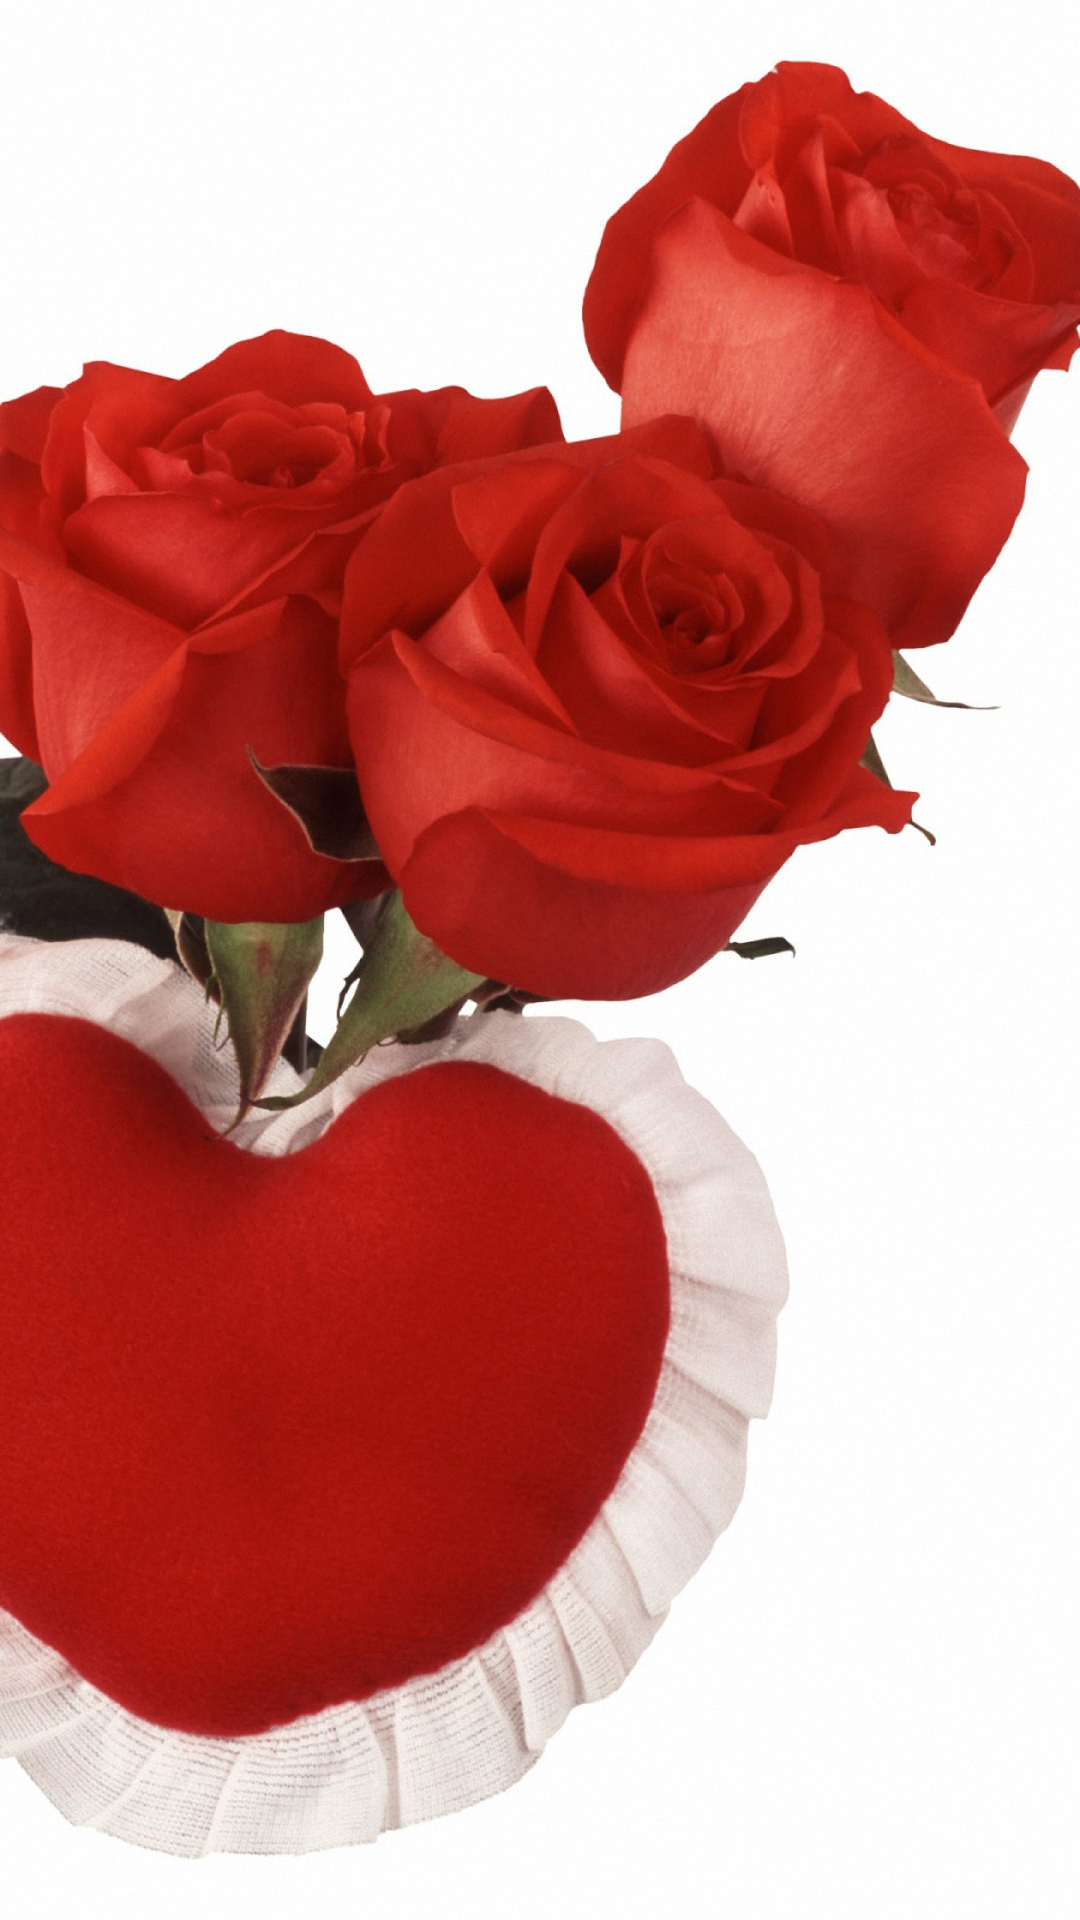 Hd Red Heart Rose Samsung Galaxy A7 Wallpapers Love Red Rose Good Morning 263030 Hd Wallpaper Backgrounds Download